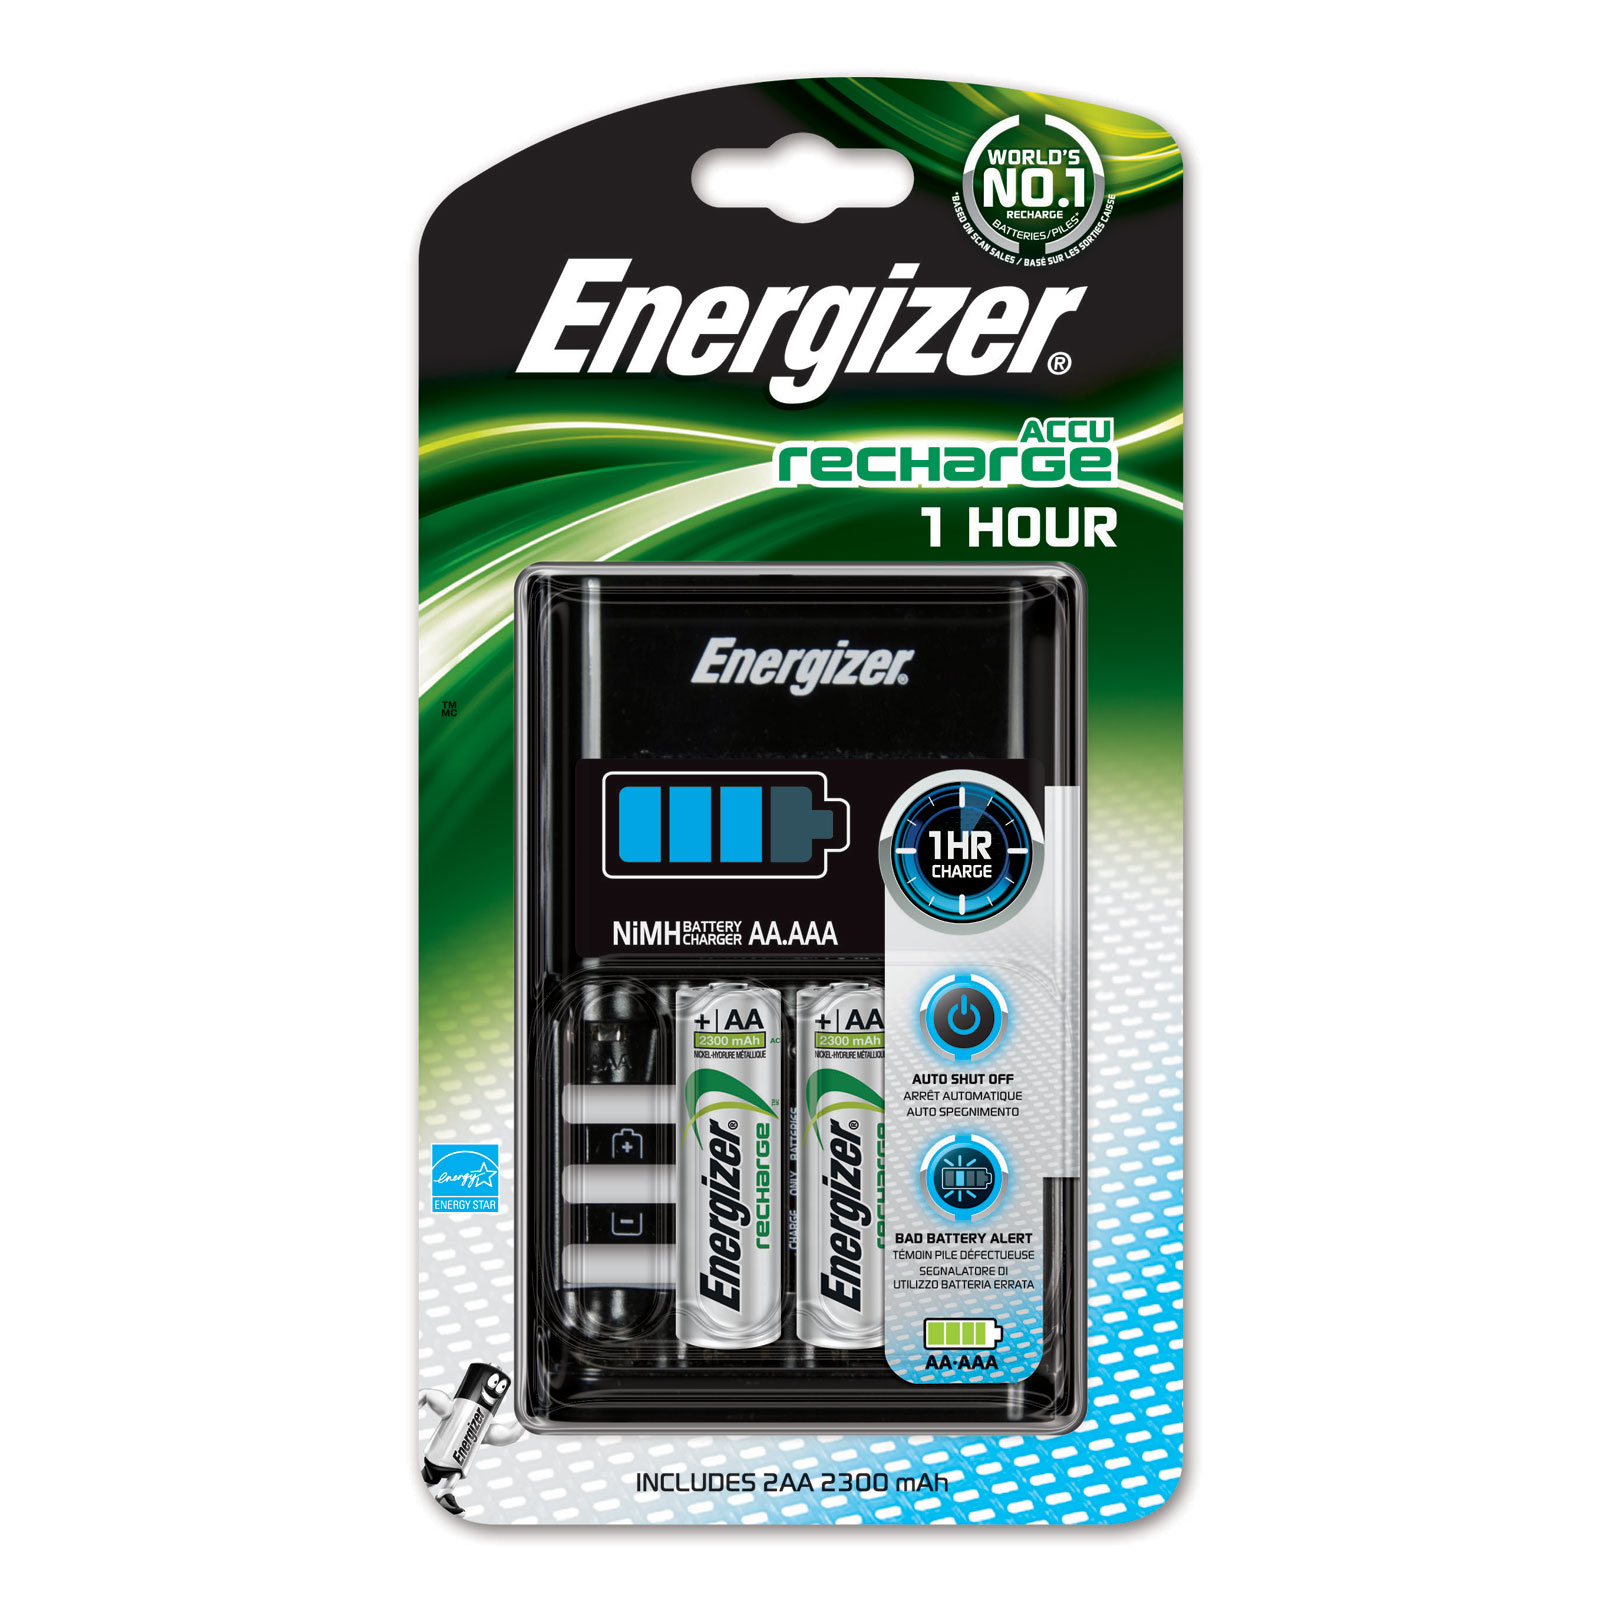 energizer accu recharge 1 hour pile chargeur energizer sur. Black Bedroom Furniture Sets. Home Design Ideas